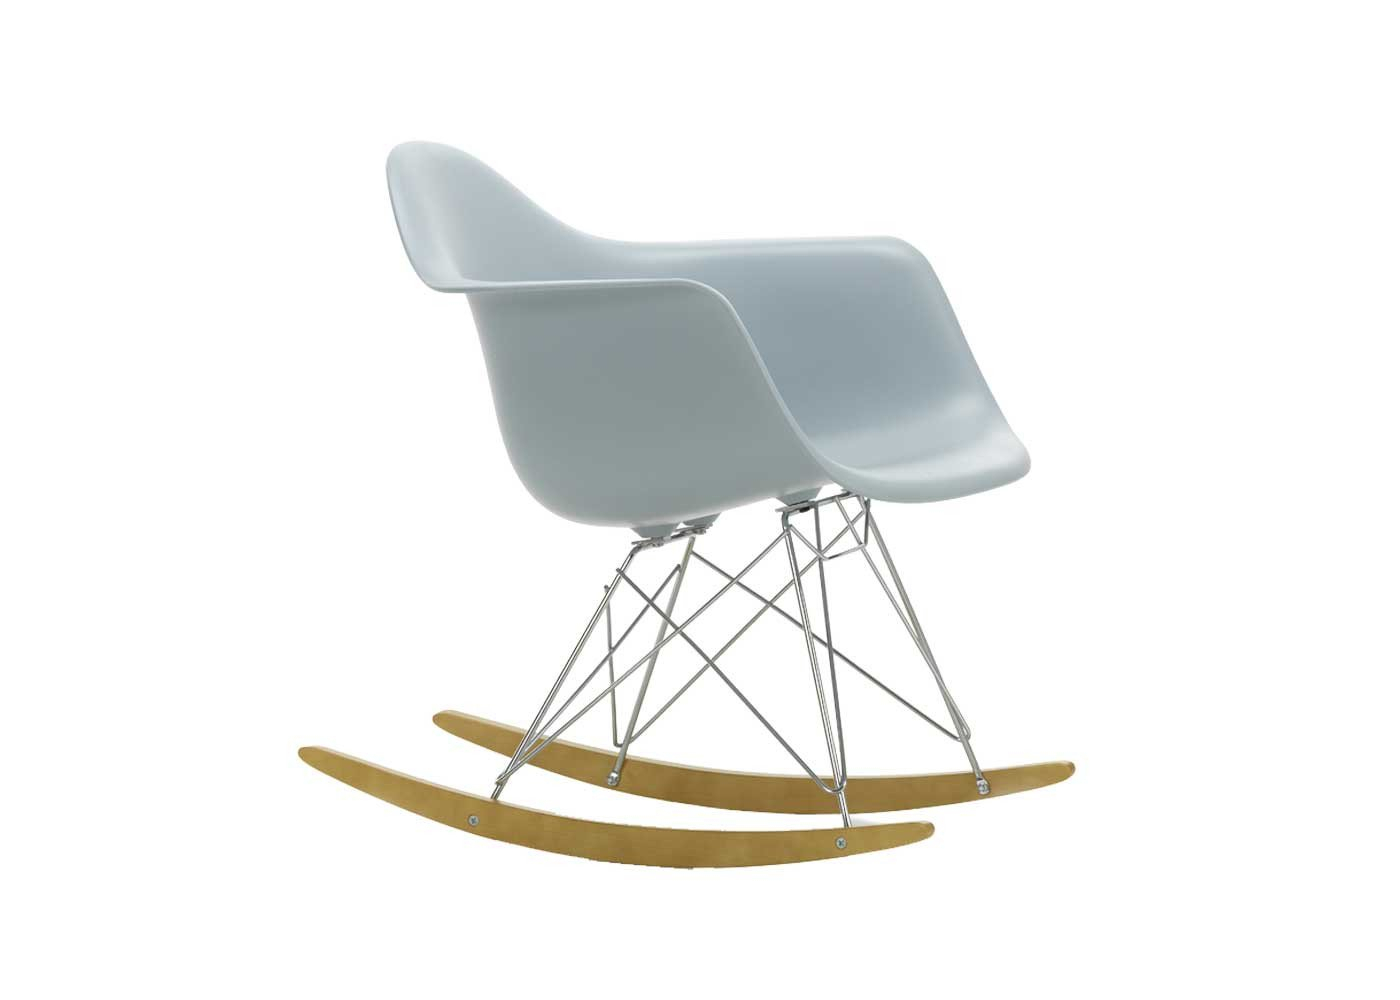 Eames Rar Rocking Chair With Rocking Chairs In Cream Fabric And White (#10 of 20)